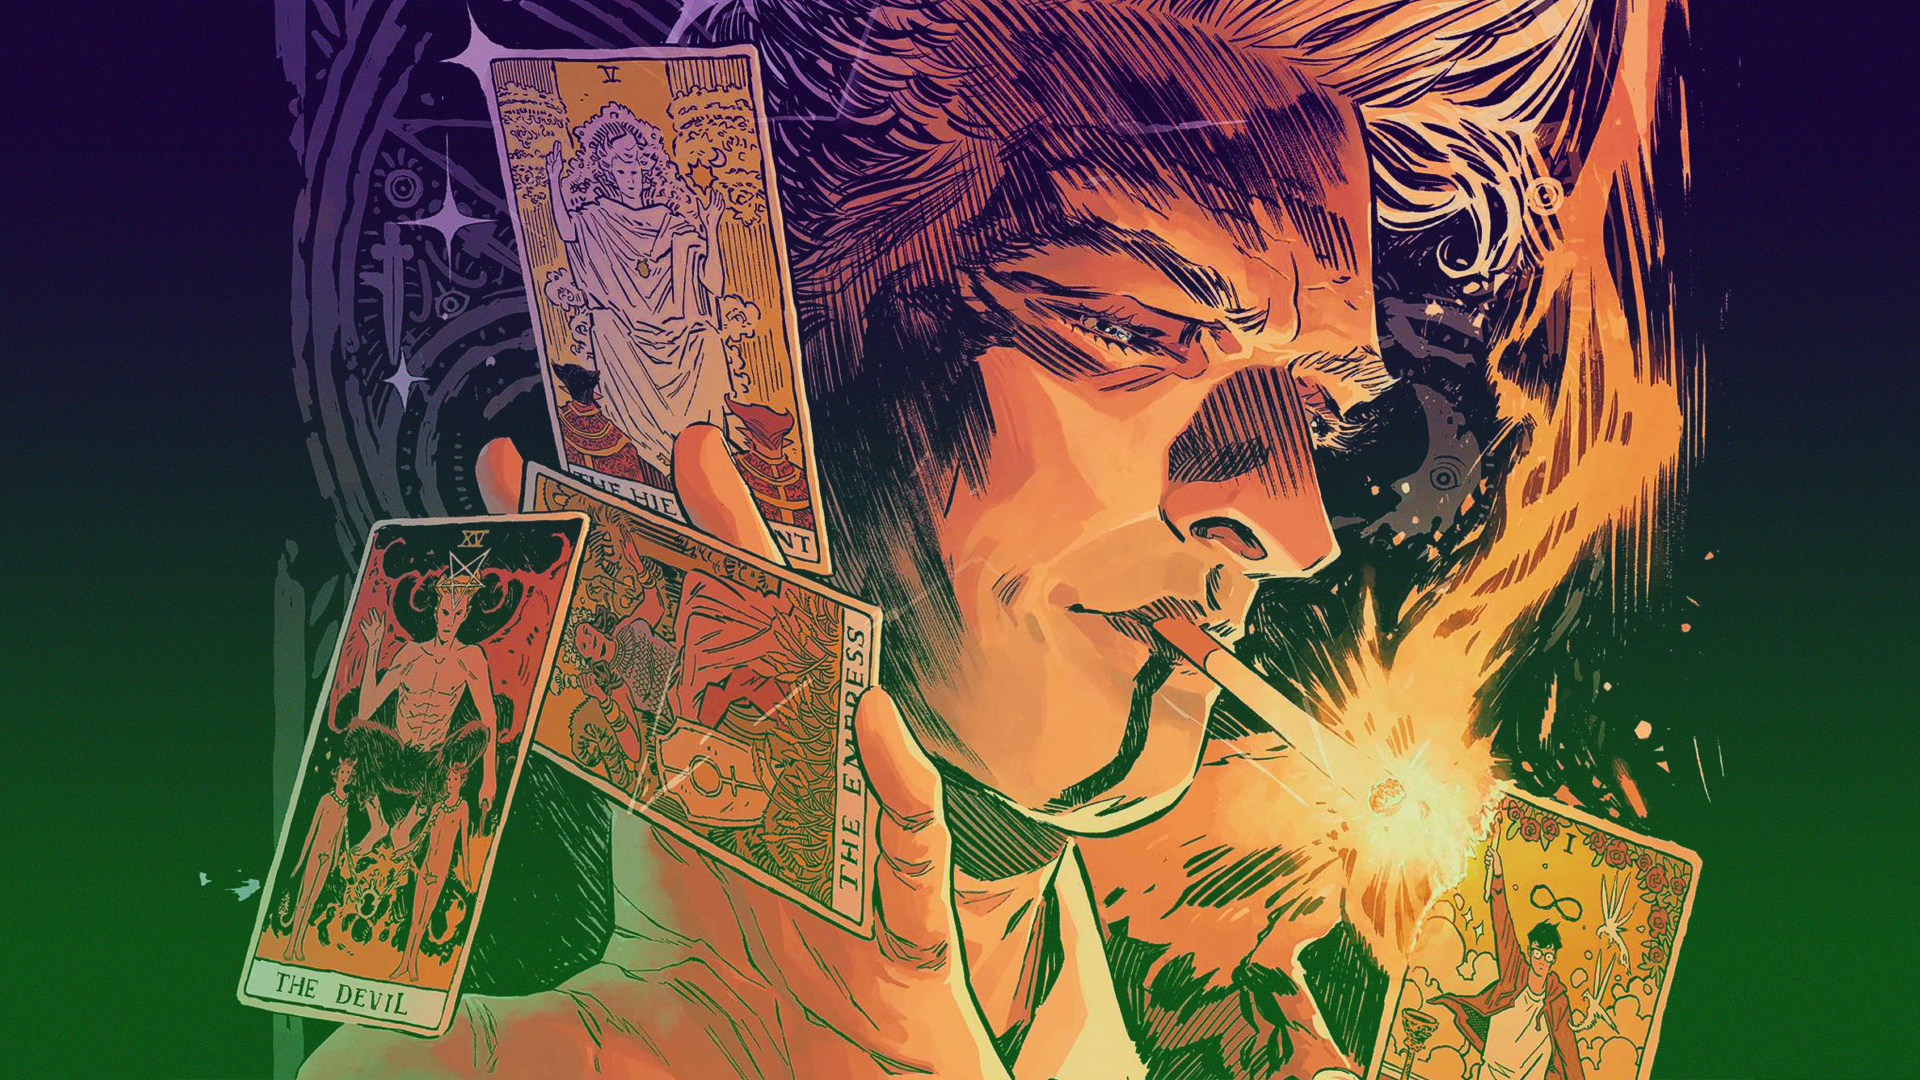 Graphic novel featuring a montage of character lit by the light of his cigarette and hands holding various Tarot cards